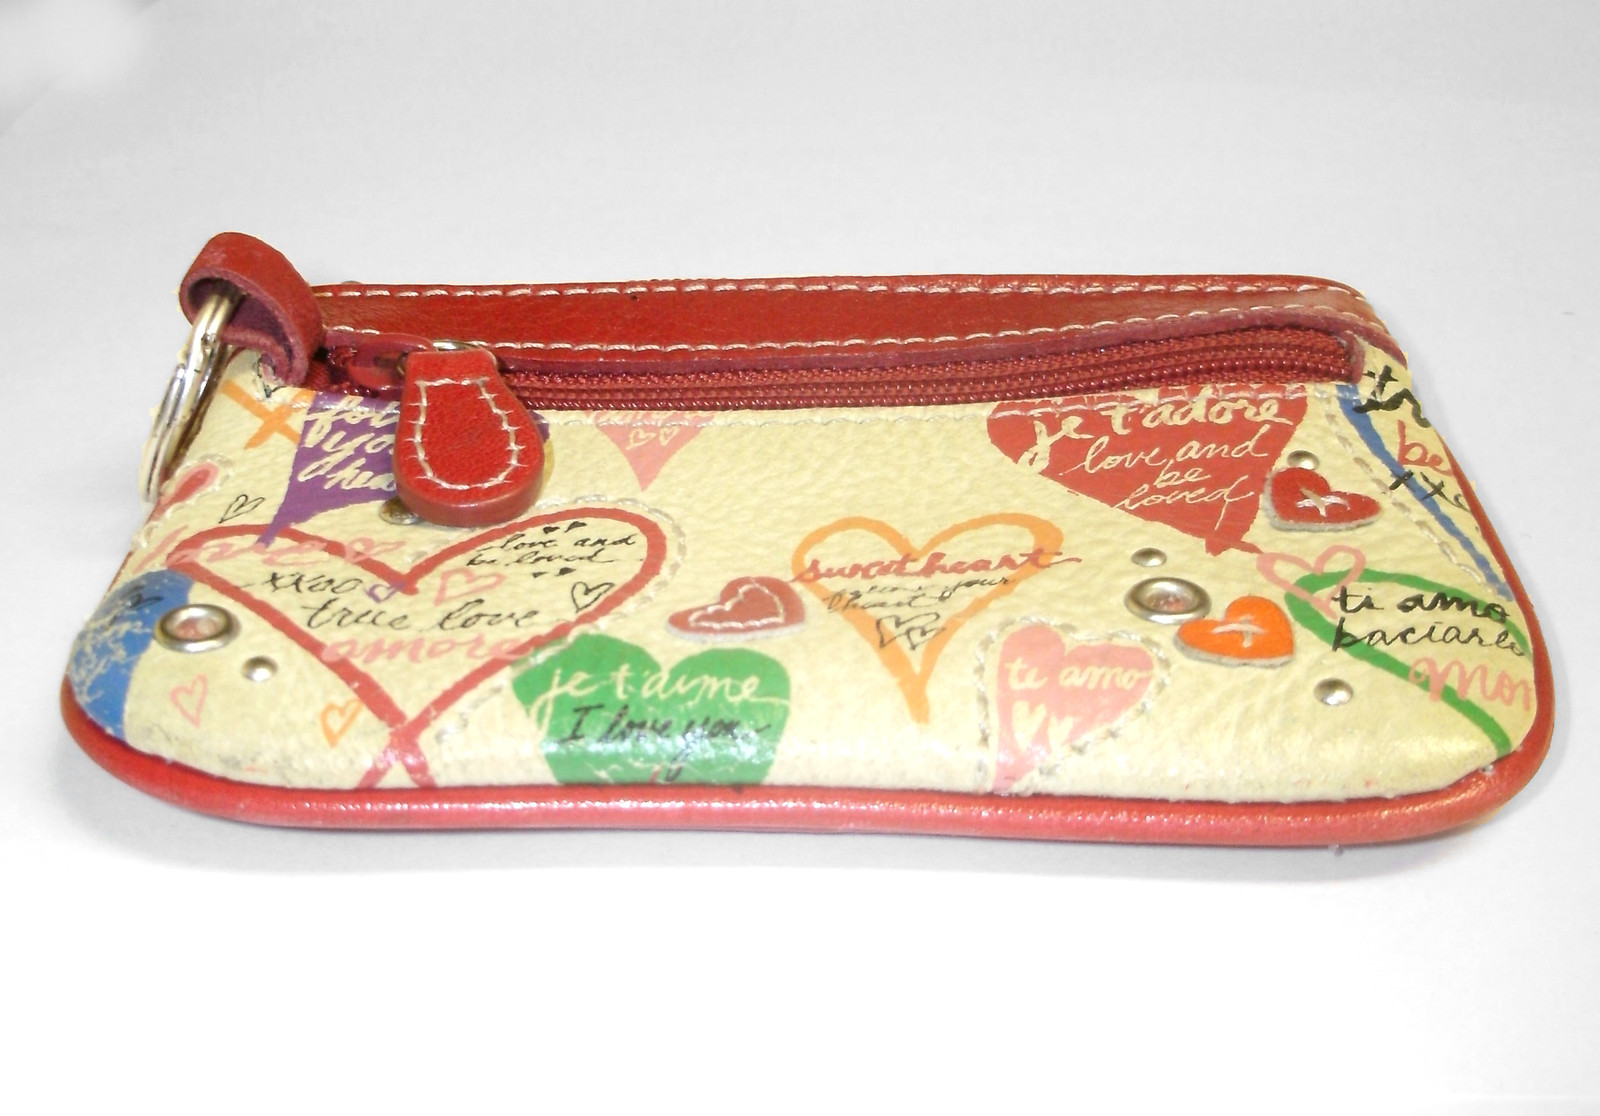 Fossil Mini ID Wallet Coin Purse Red Leather Heart Love Keychain image 3